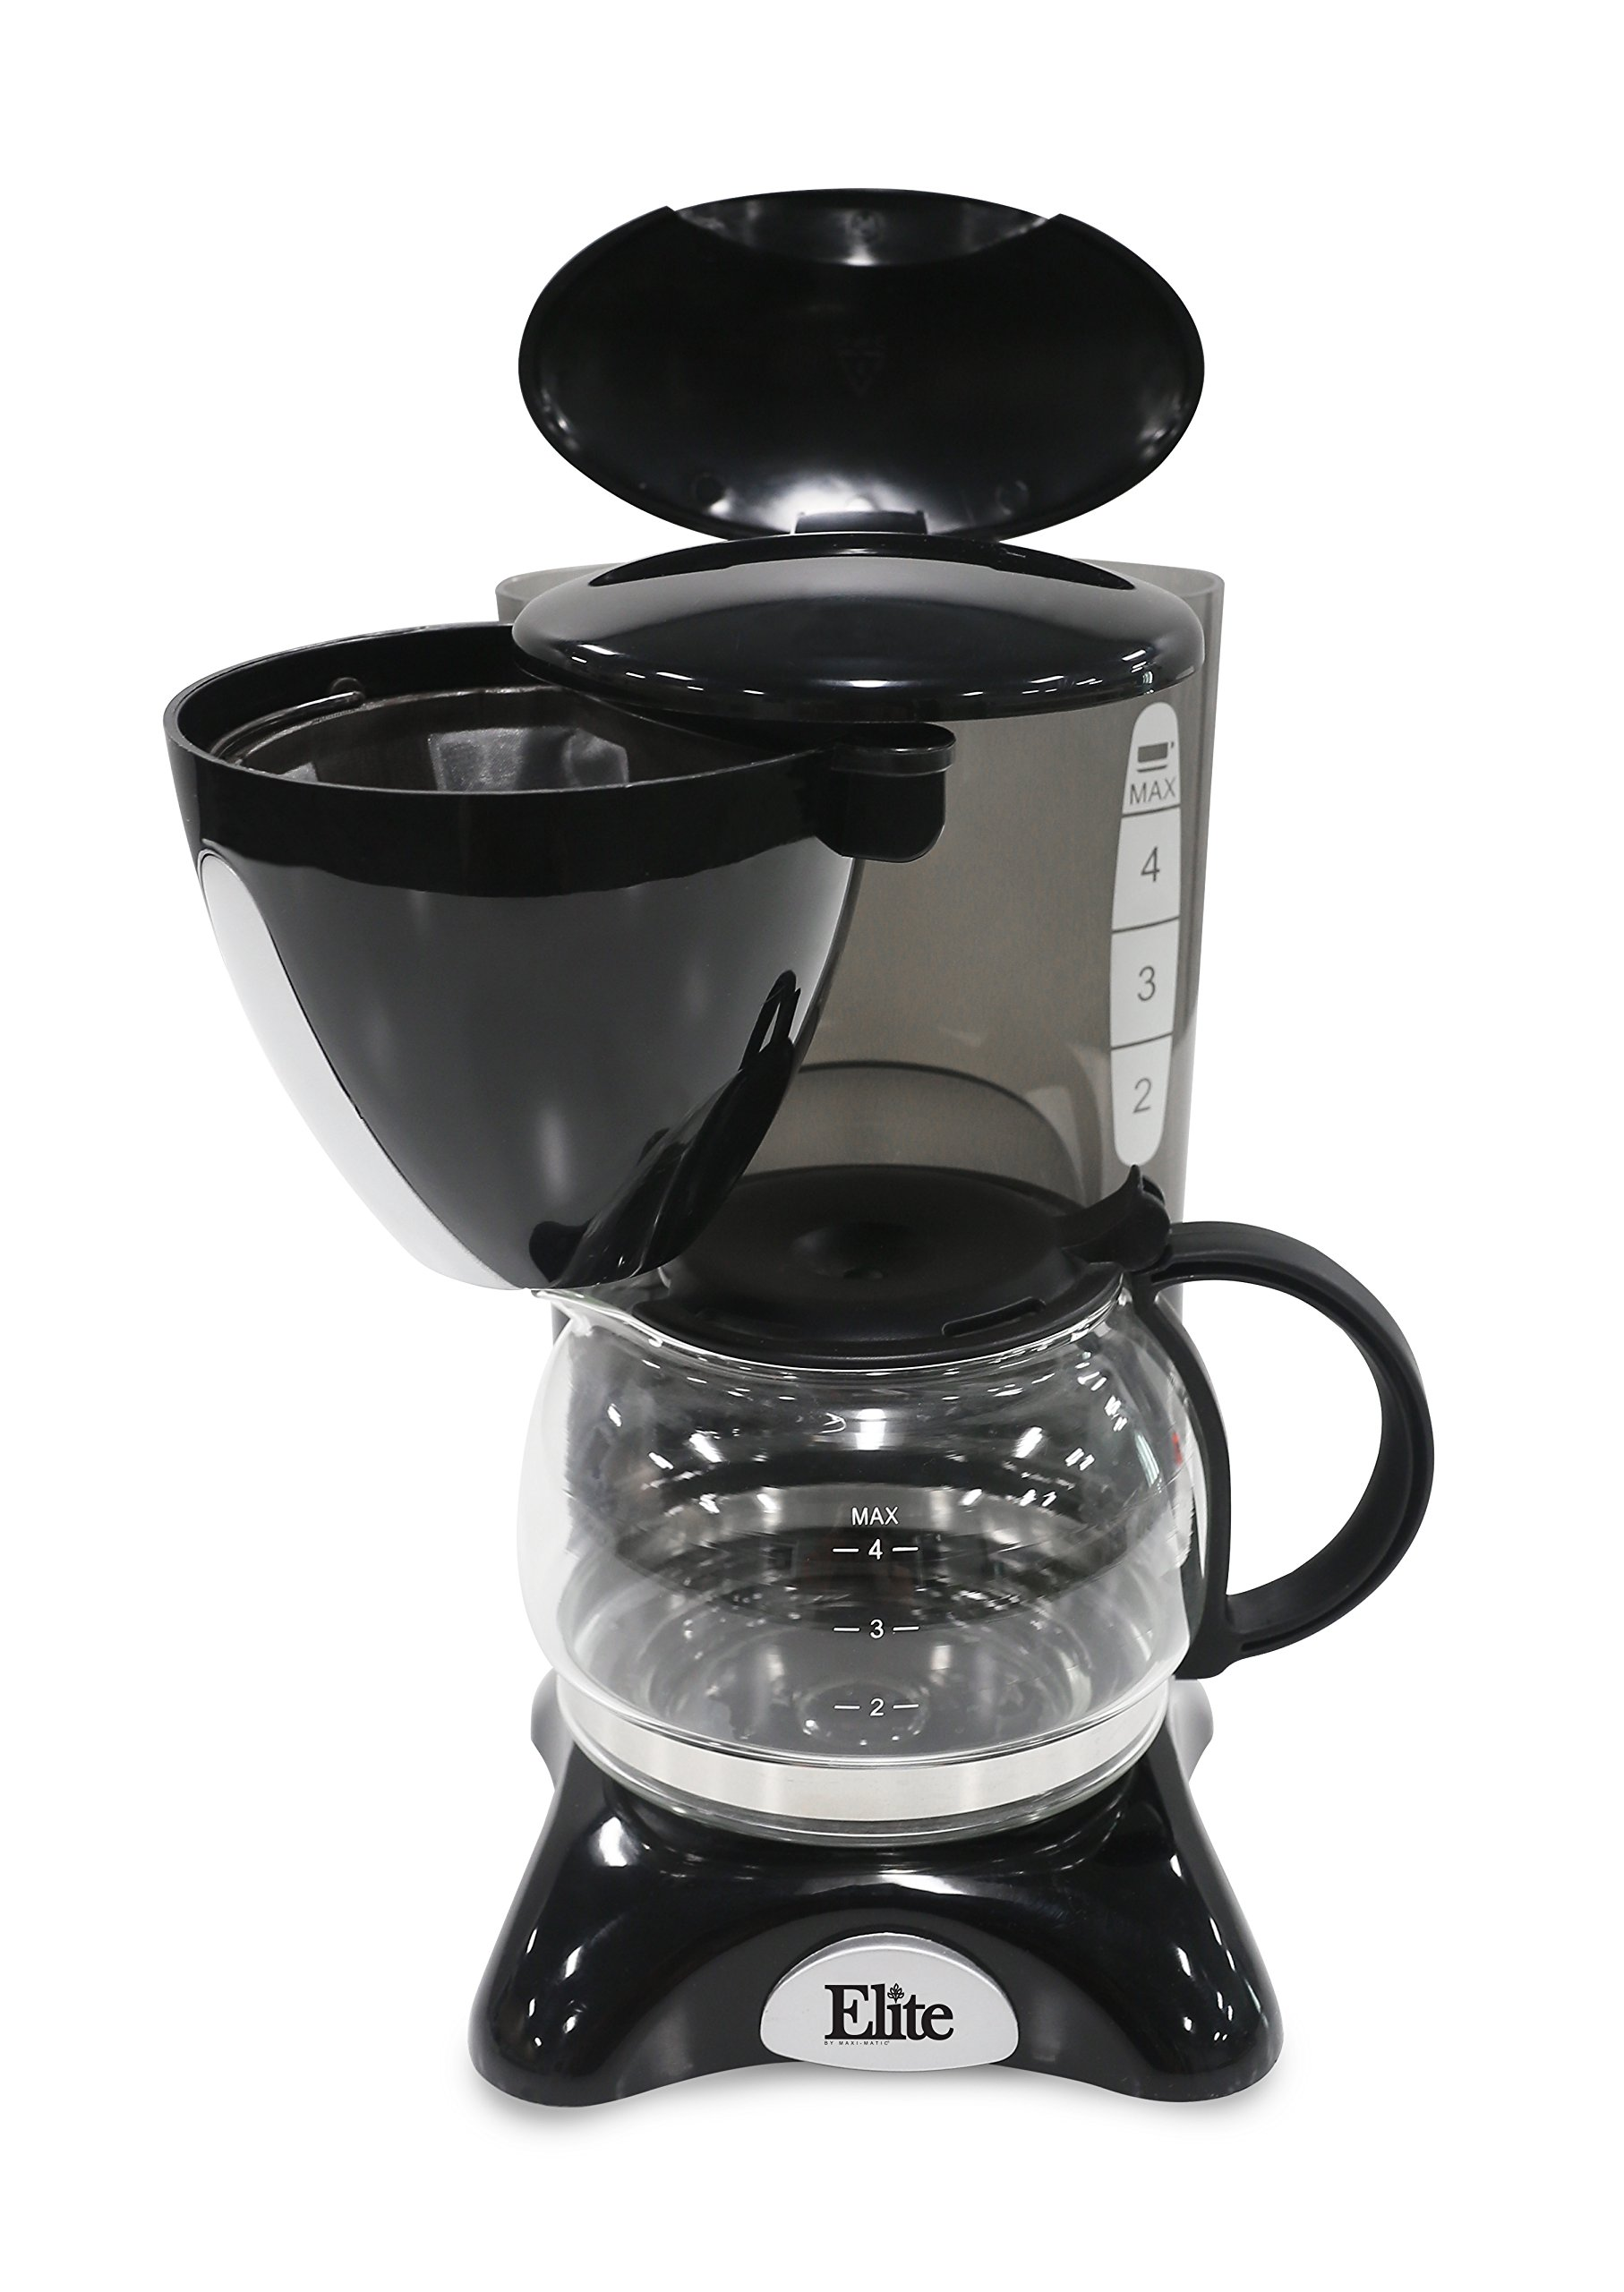 Elite Cuisine EHC-2022 Maxi-Matic 4 Cup Coffee Maker with Pause and Serve, Black by Maxi-Matic (Image #3)